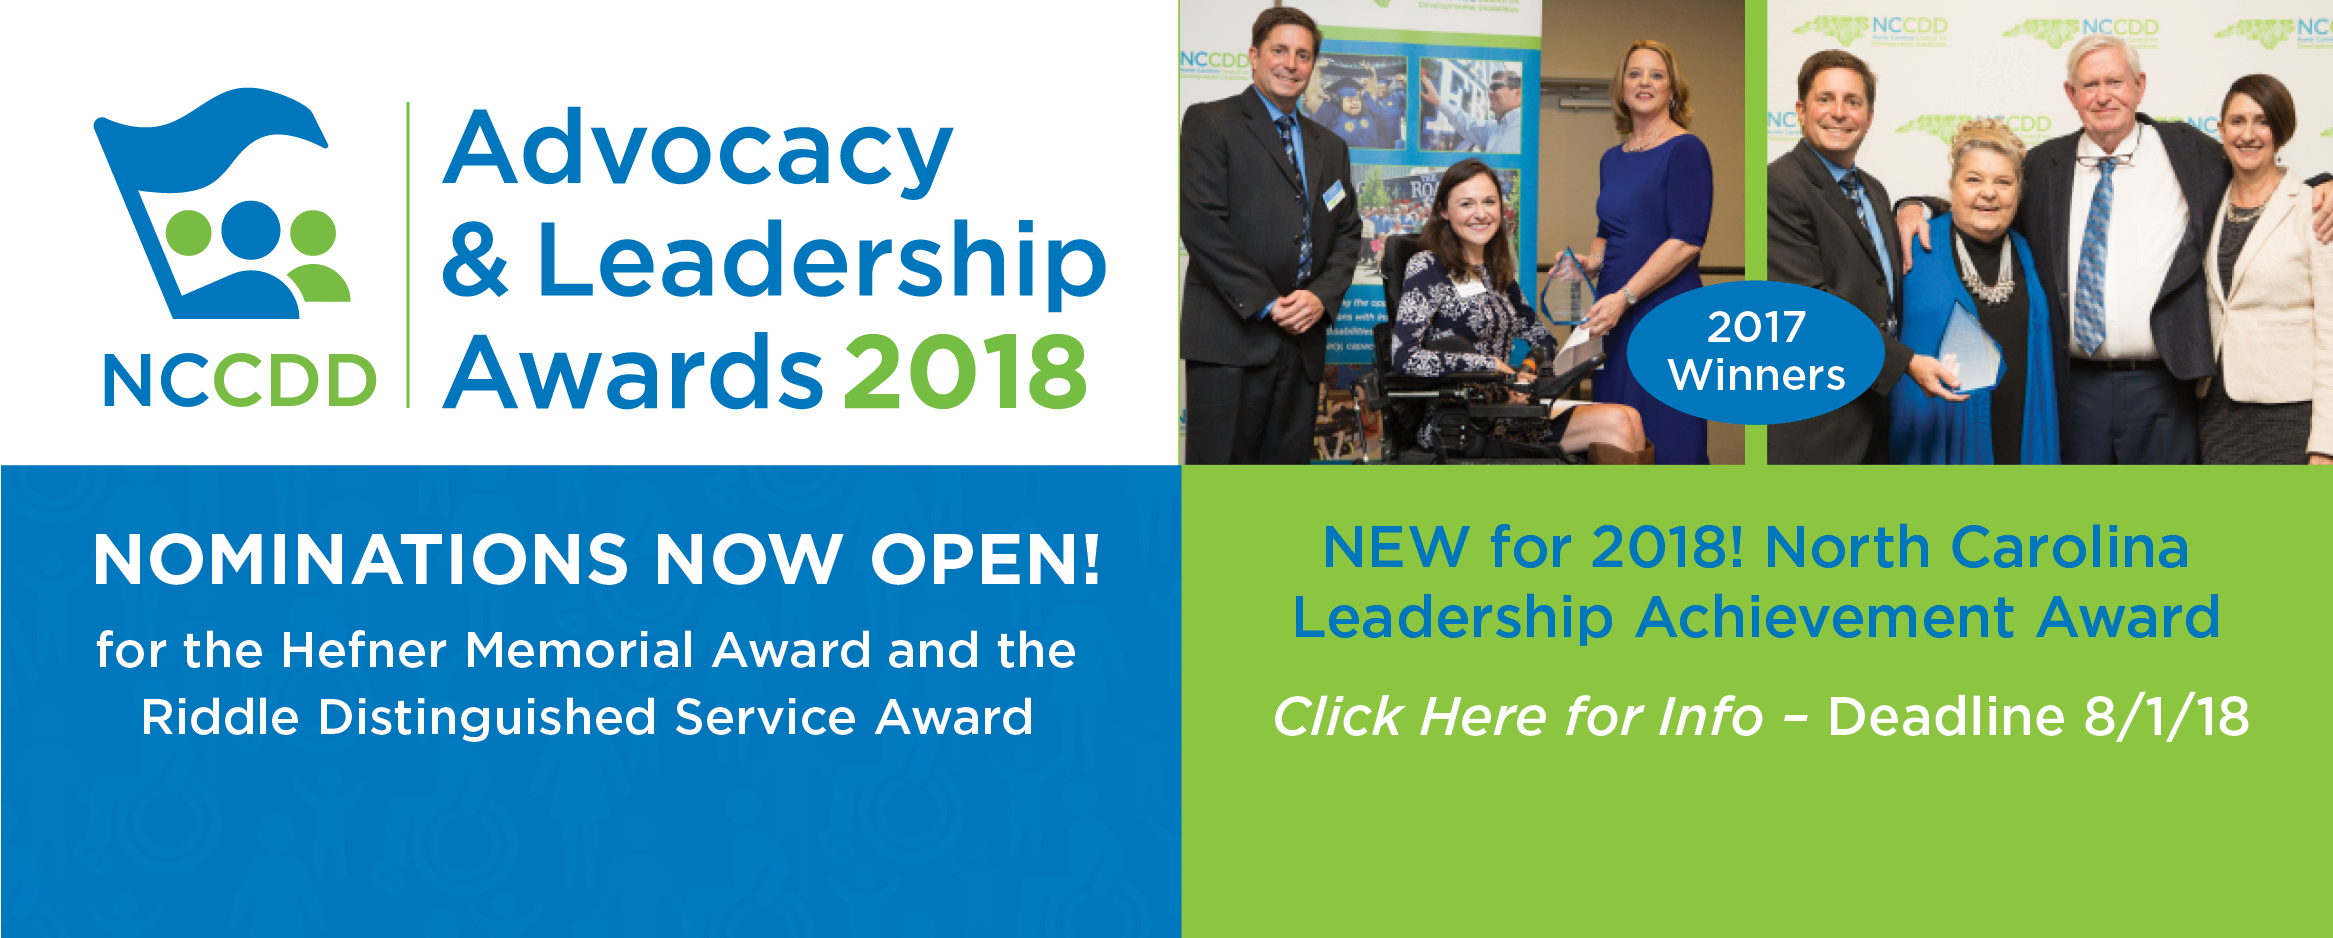 2018 Advocacy & Leadership Awards - Nominations now open! Hefner, Riddle and new Leadership Awards. Deadline 8/1/18